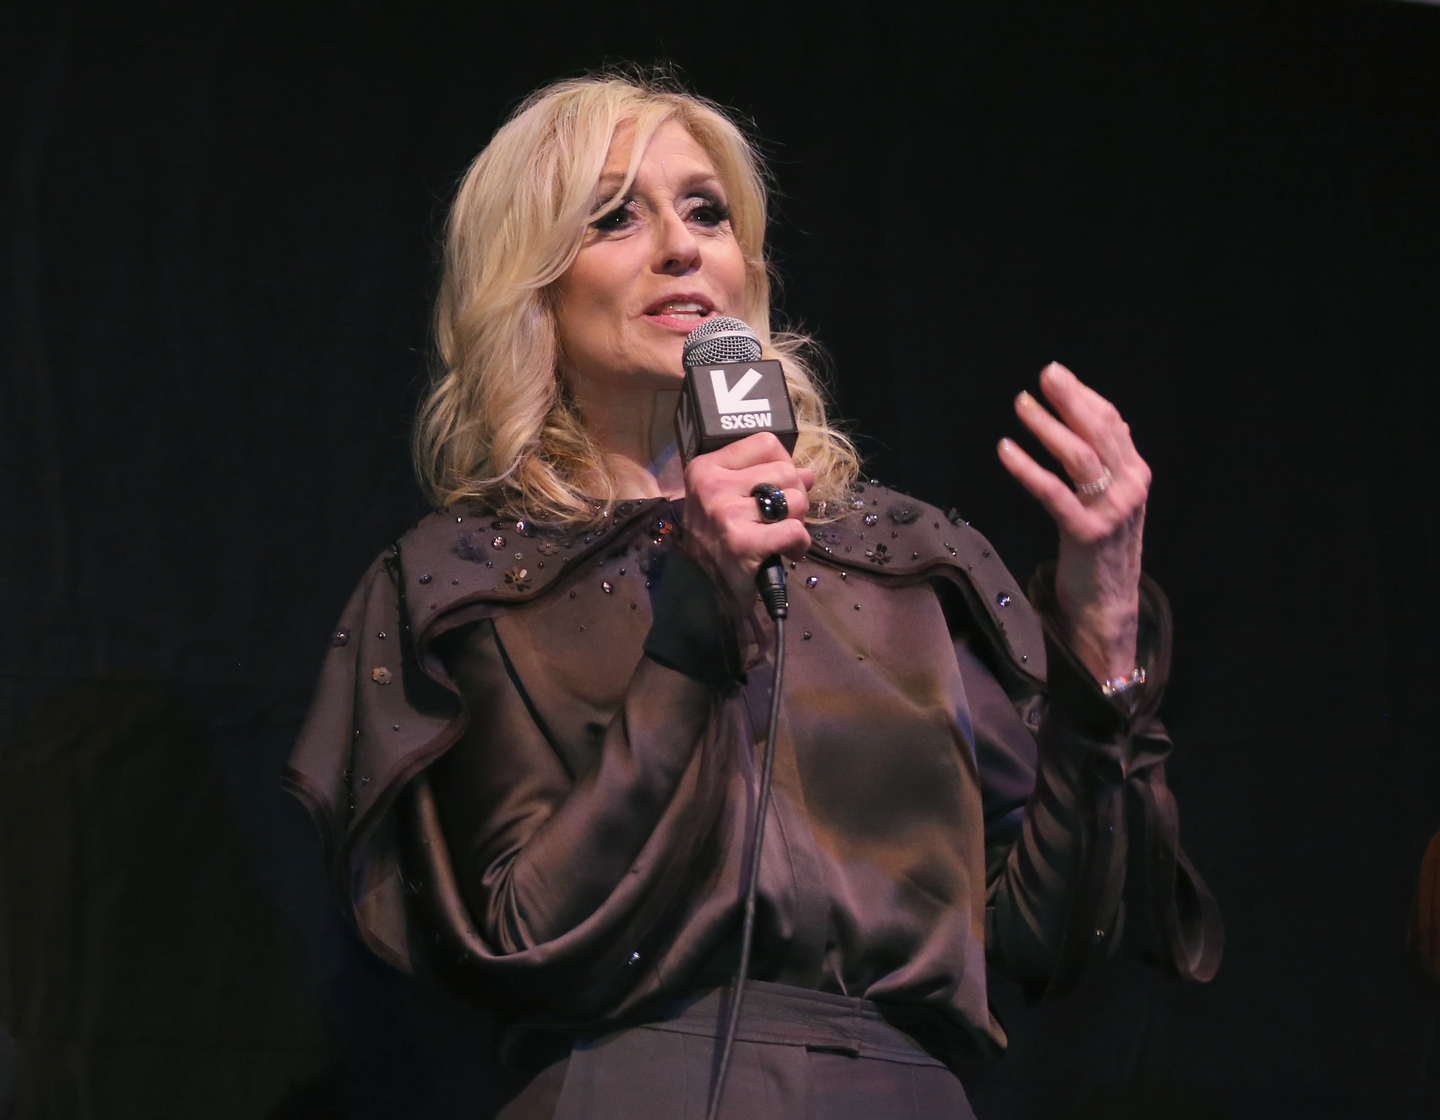 Judith Light speaks onstage at the Ms. White Light premiere at the Stateside Theater.